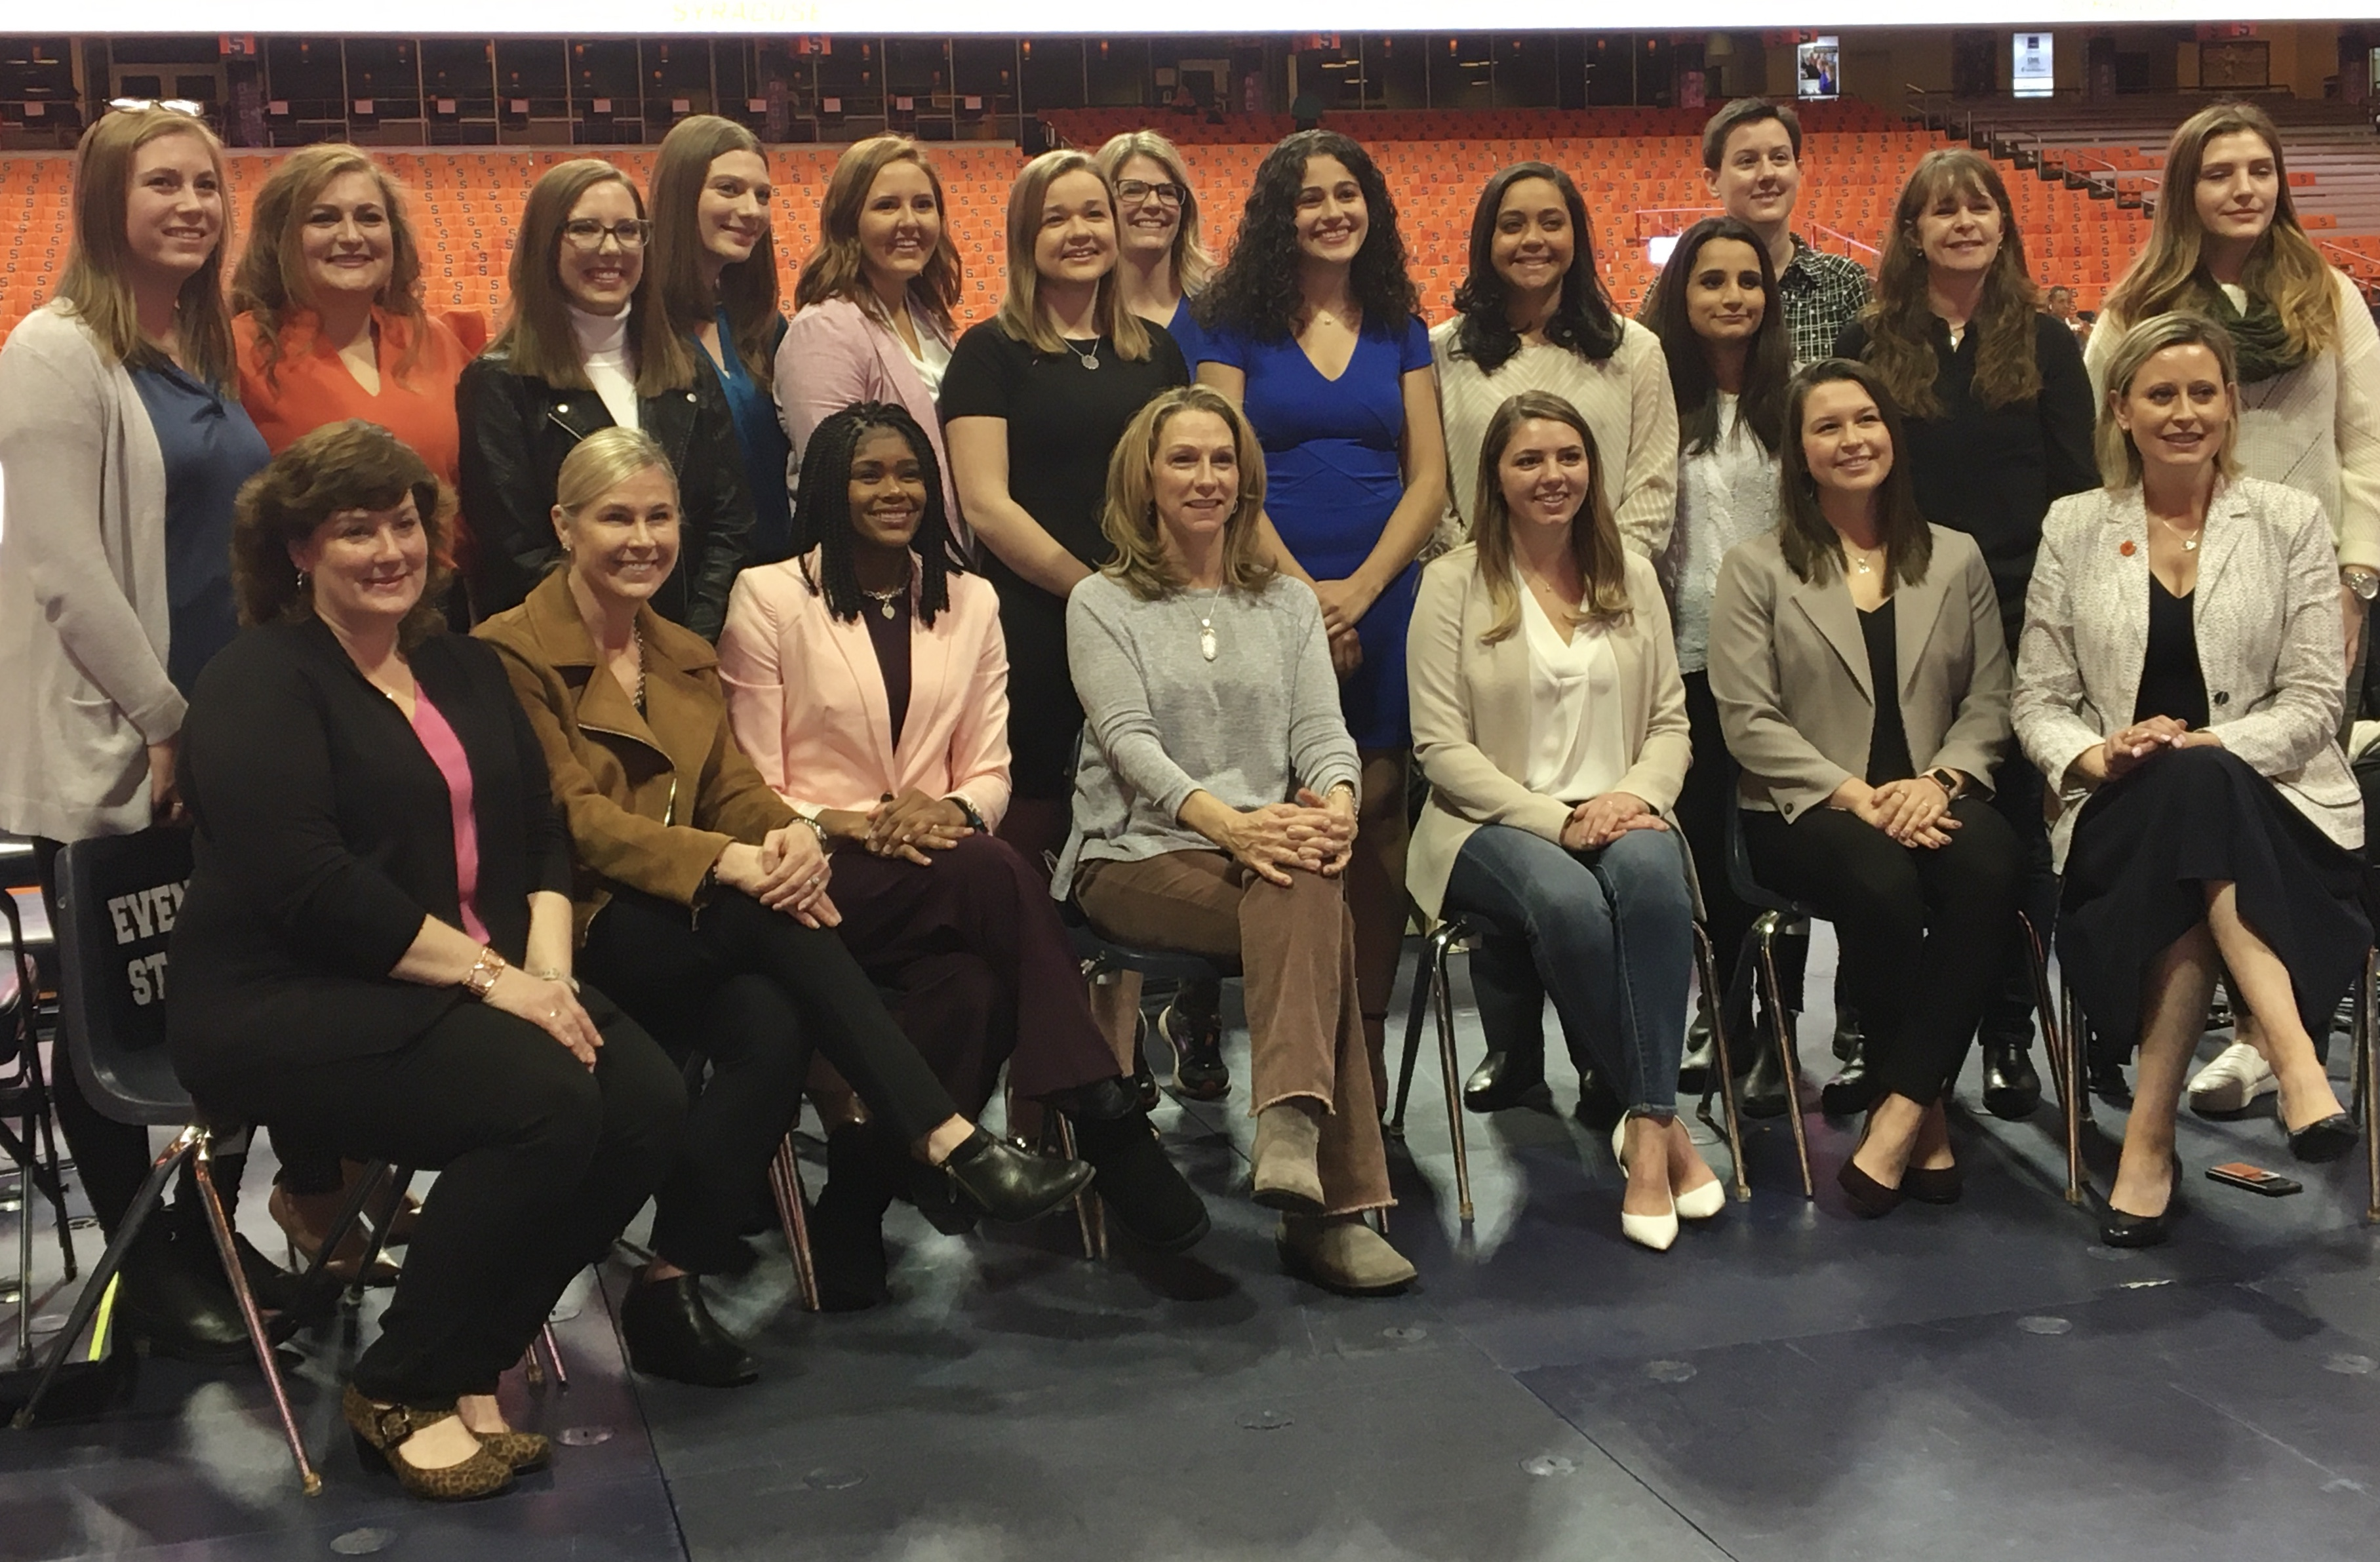 A female cast and crew made history Thursday at the Syracuse women's basketball game